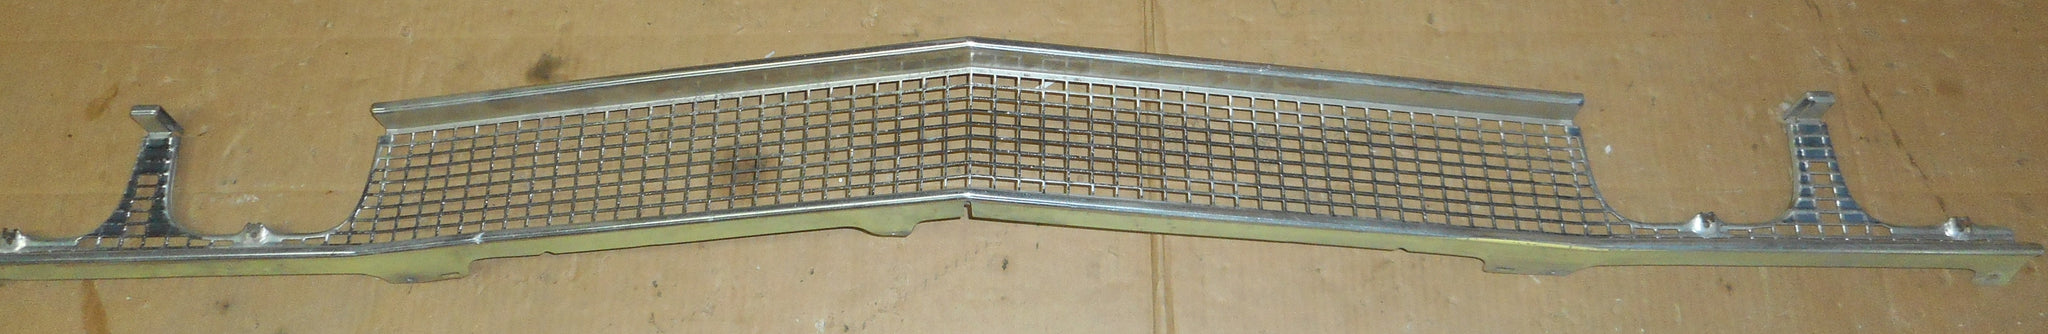 FRONT GRILL ,USED 68 CHEVELLE ELCAMINO